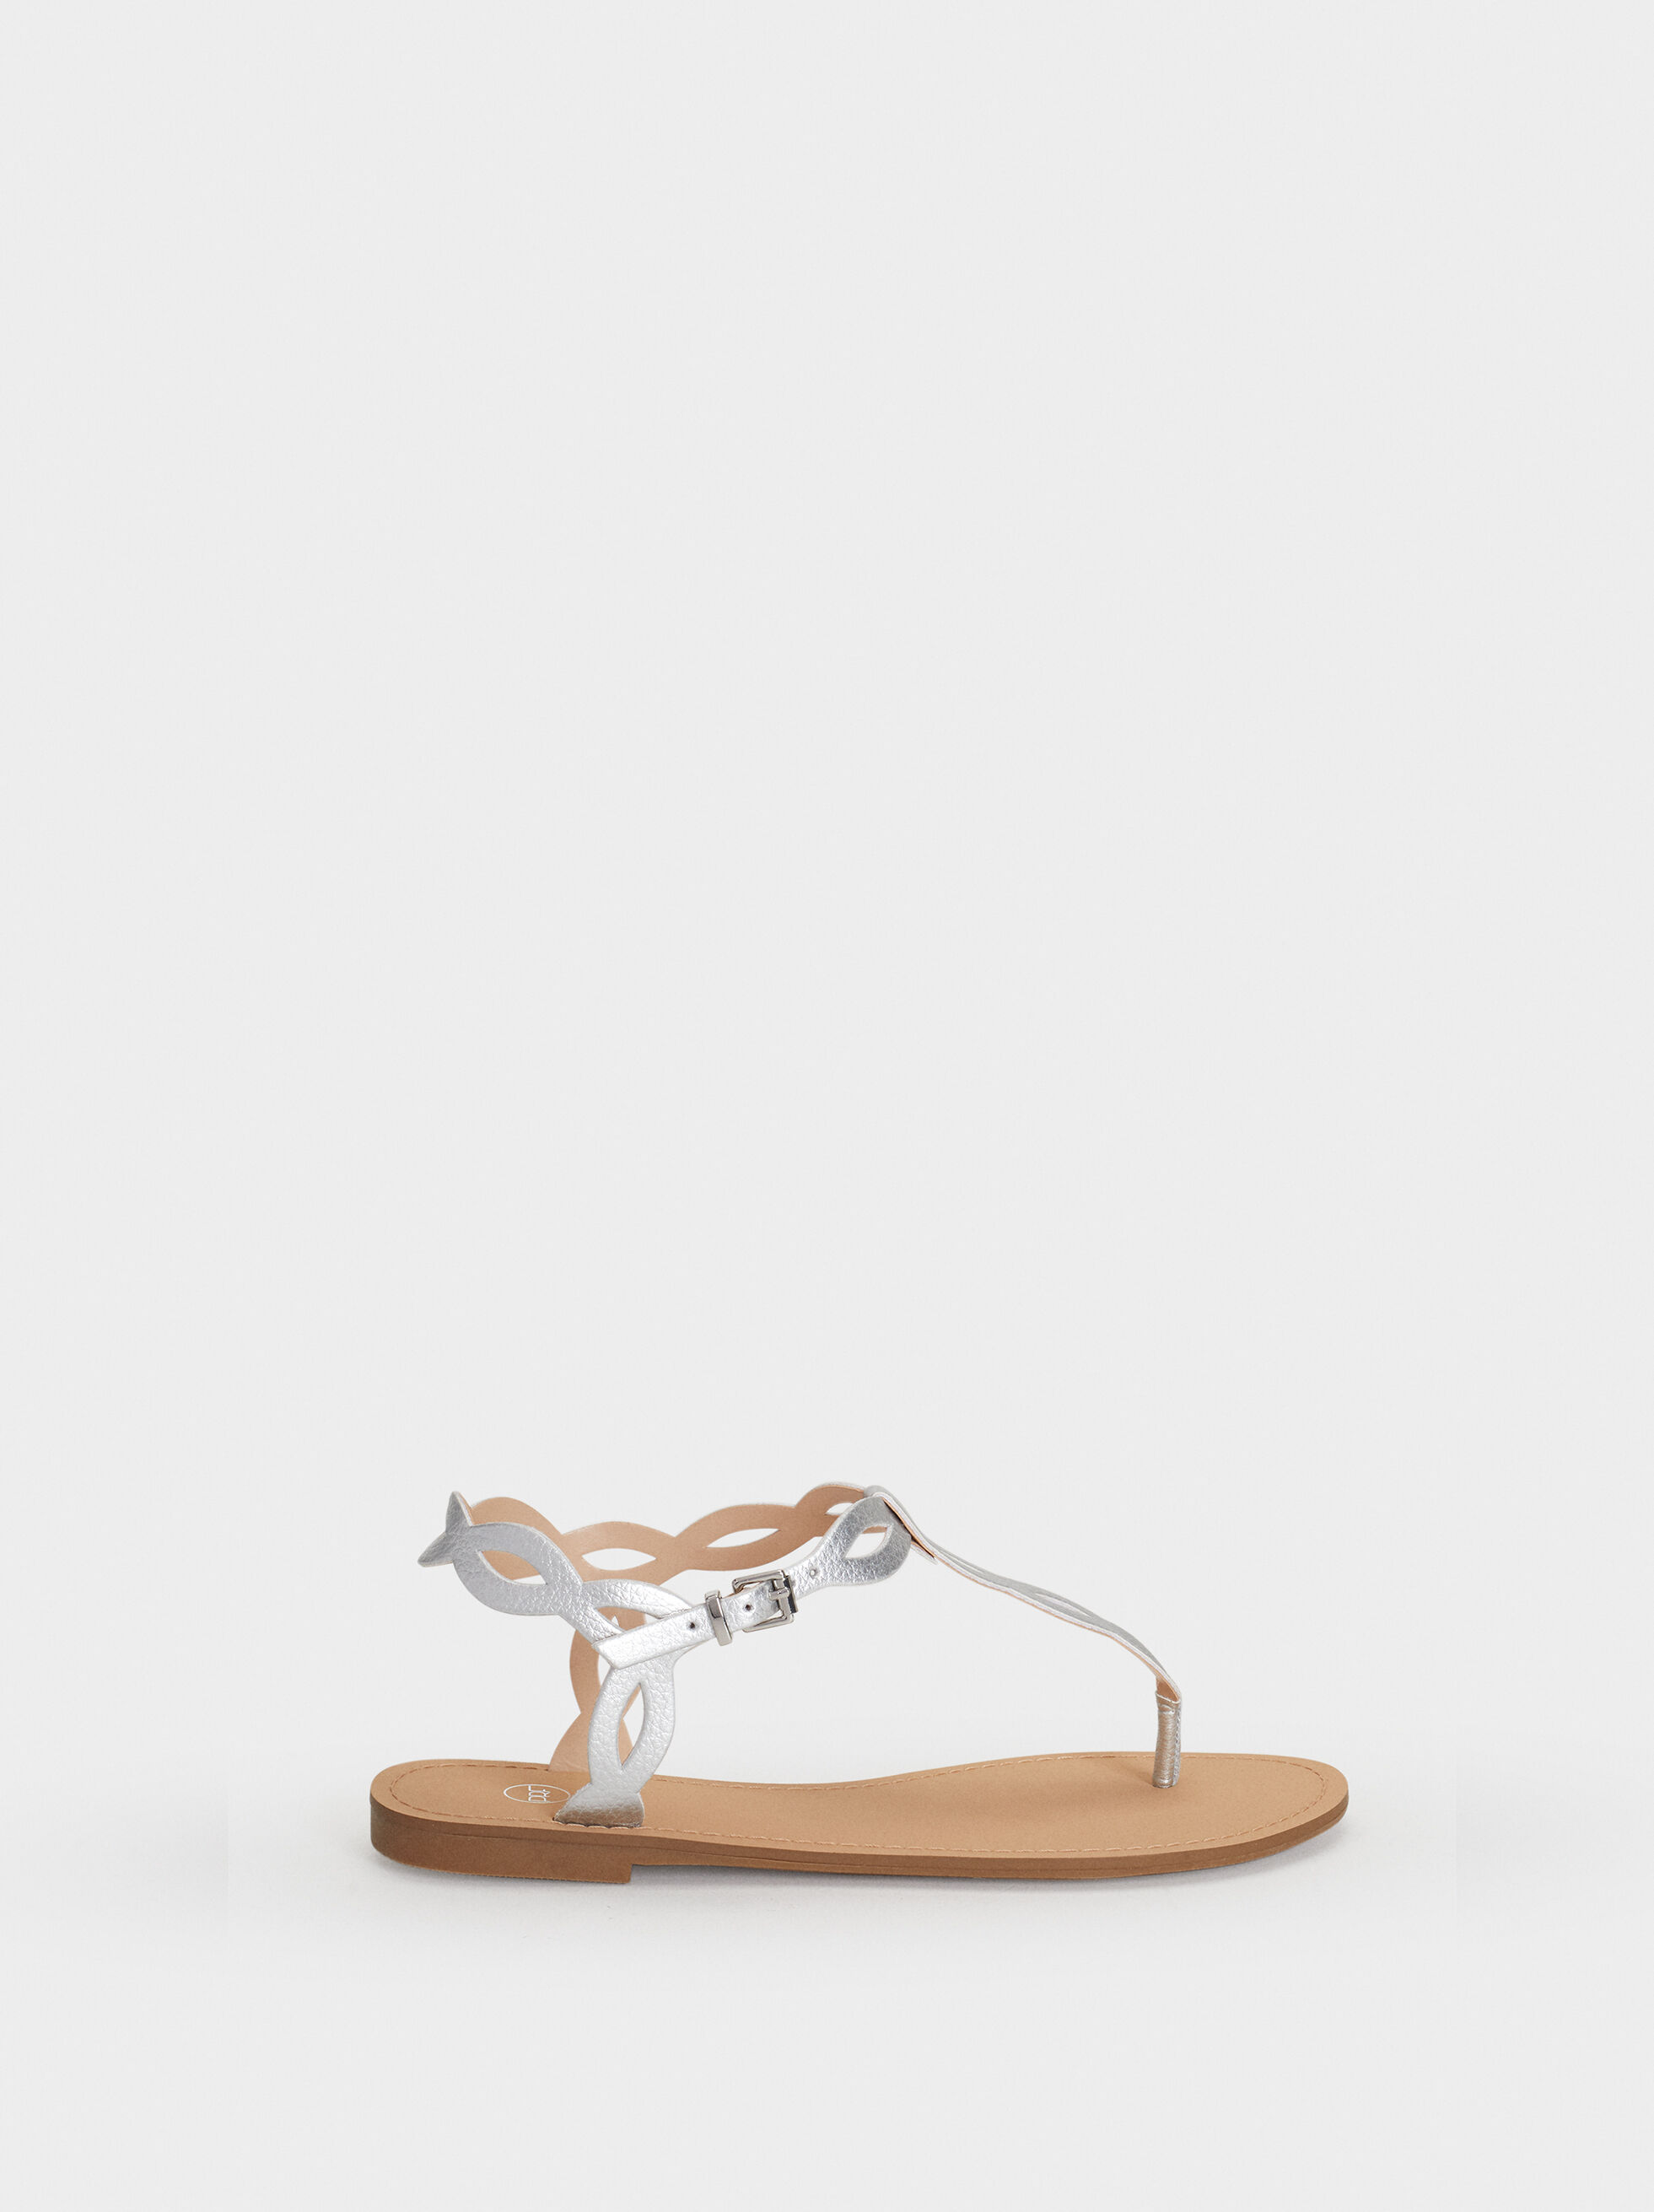 Flat Strappy Sandals, Silver, hi-res